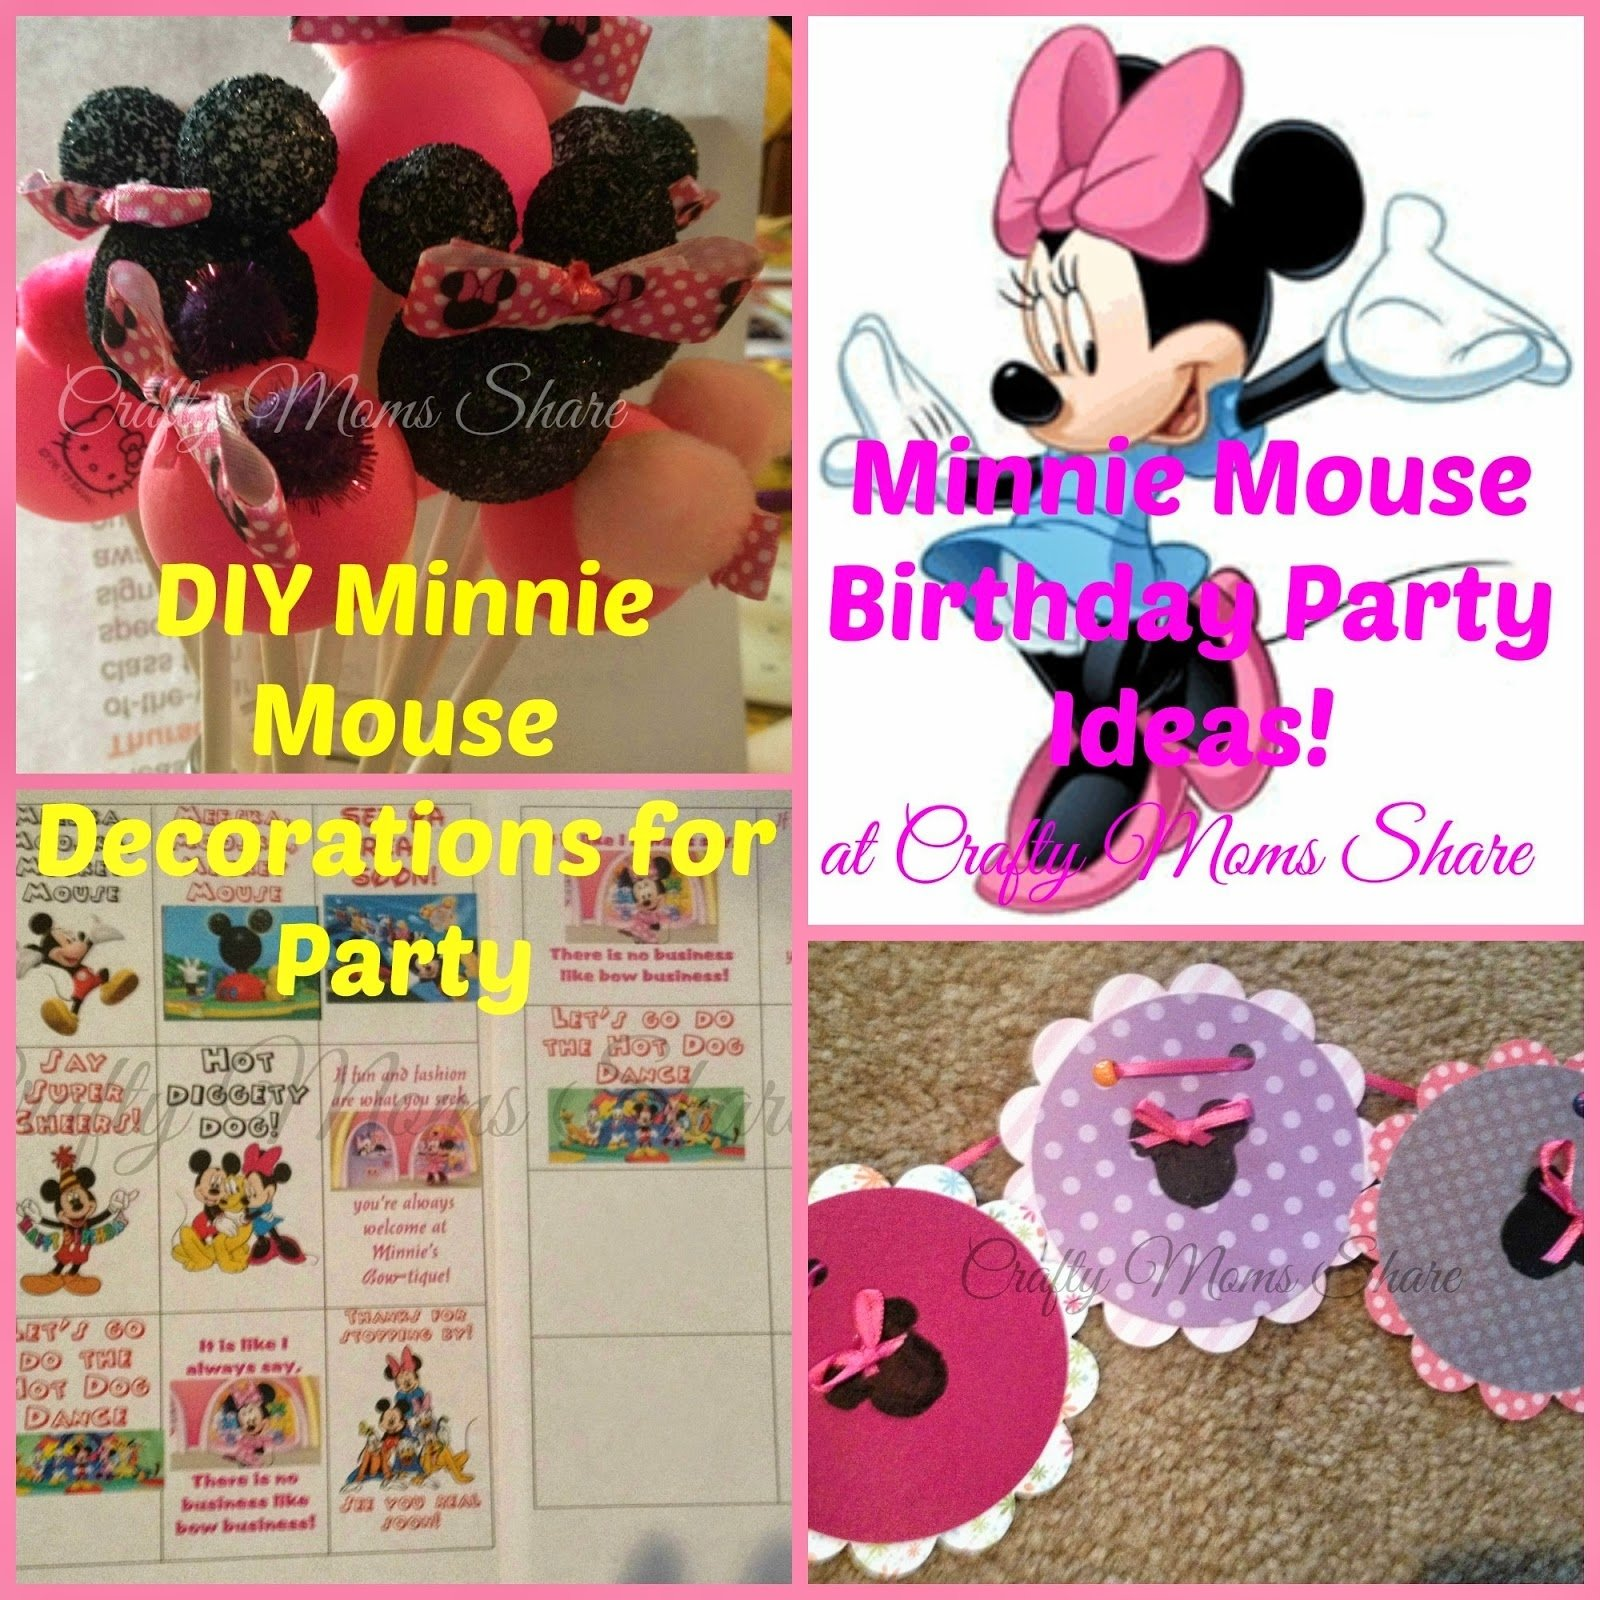 10 Ideal Minnie Mouse Party Ideas Diy crafty moms share minnie mouse birthday party diy decorations